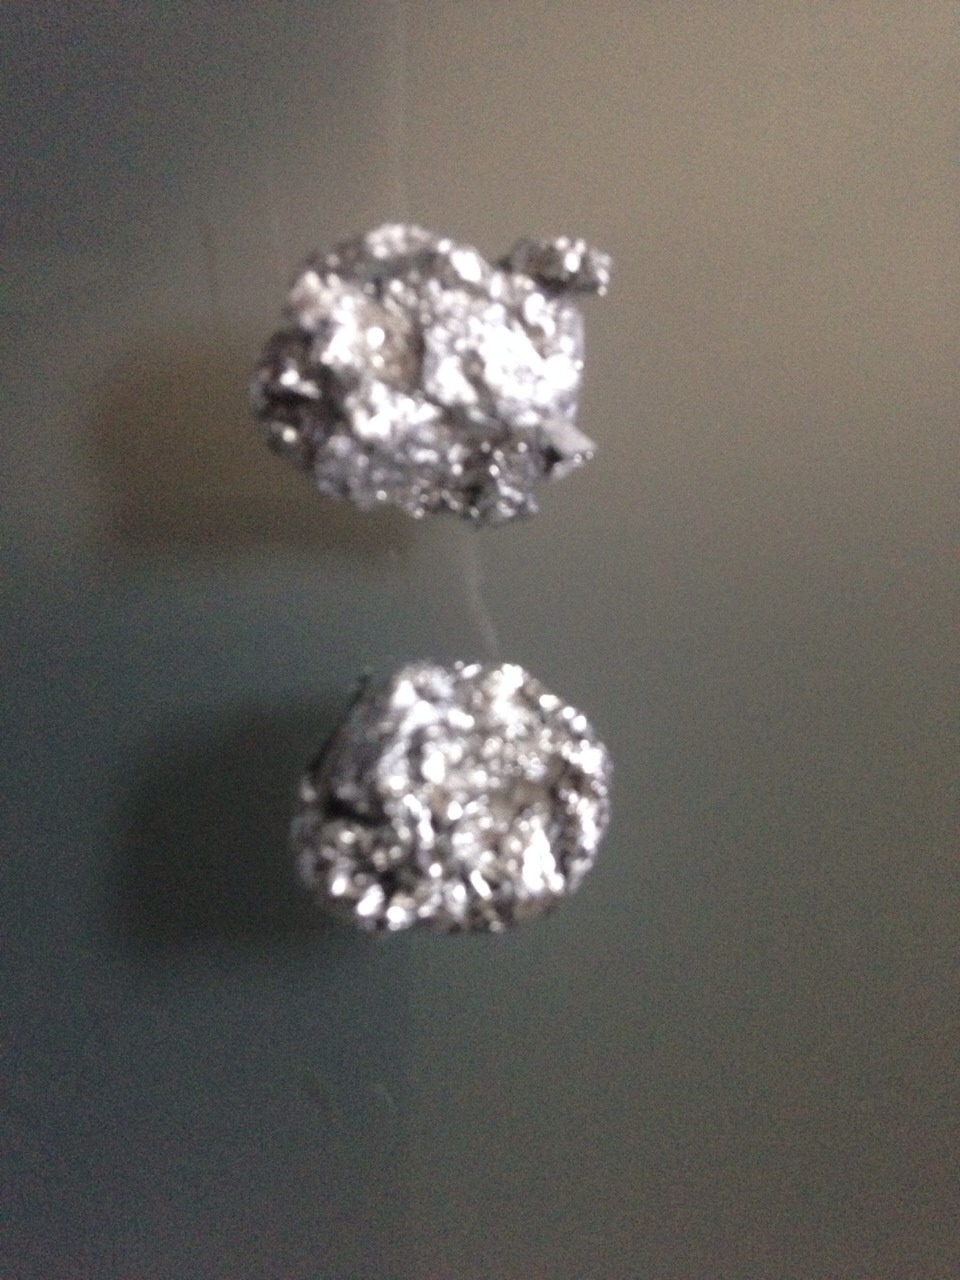 Get some foil and put them into a small ball-like shapes